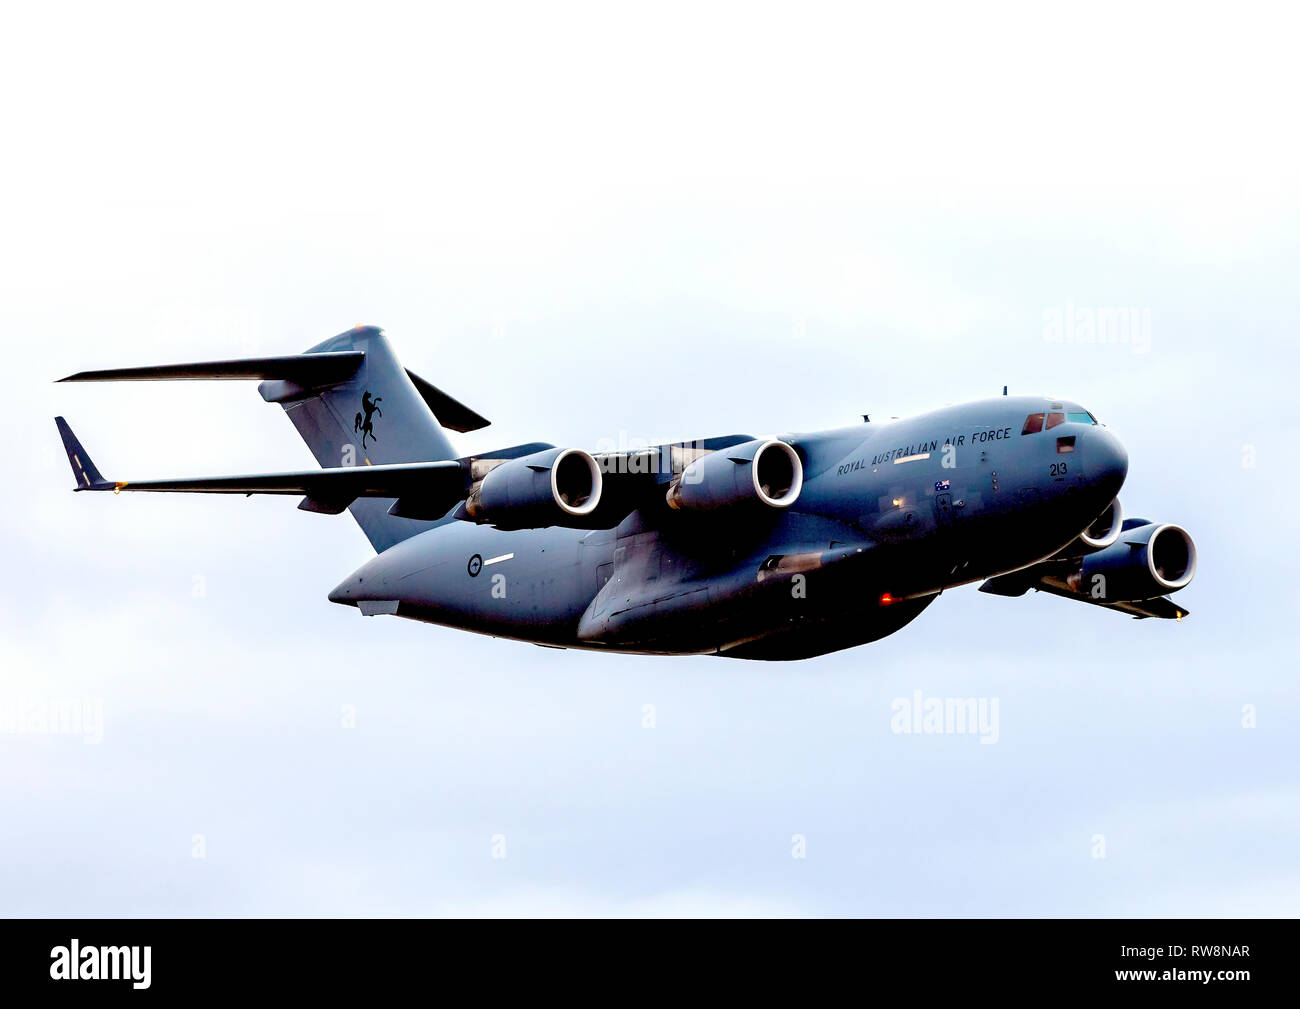 One of six Royal Australian Air Force Boeing C17 Globemaster 111 transport aircraft flew at the Temora Warbirds Downunder 2018 in Australia - Stock Image